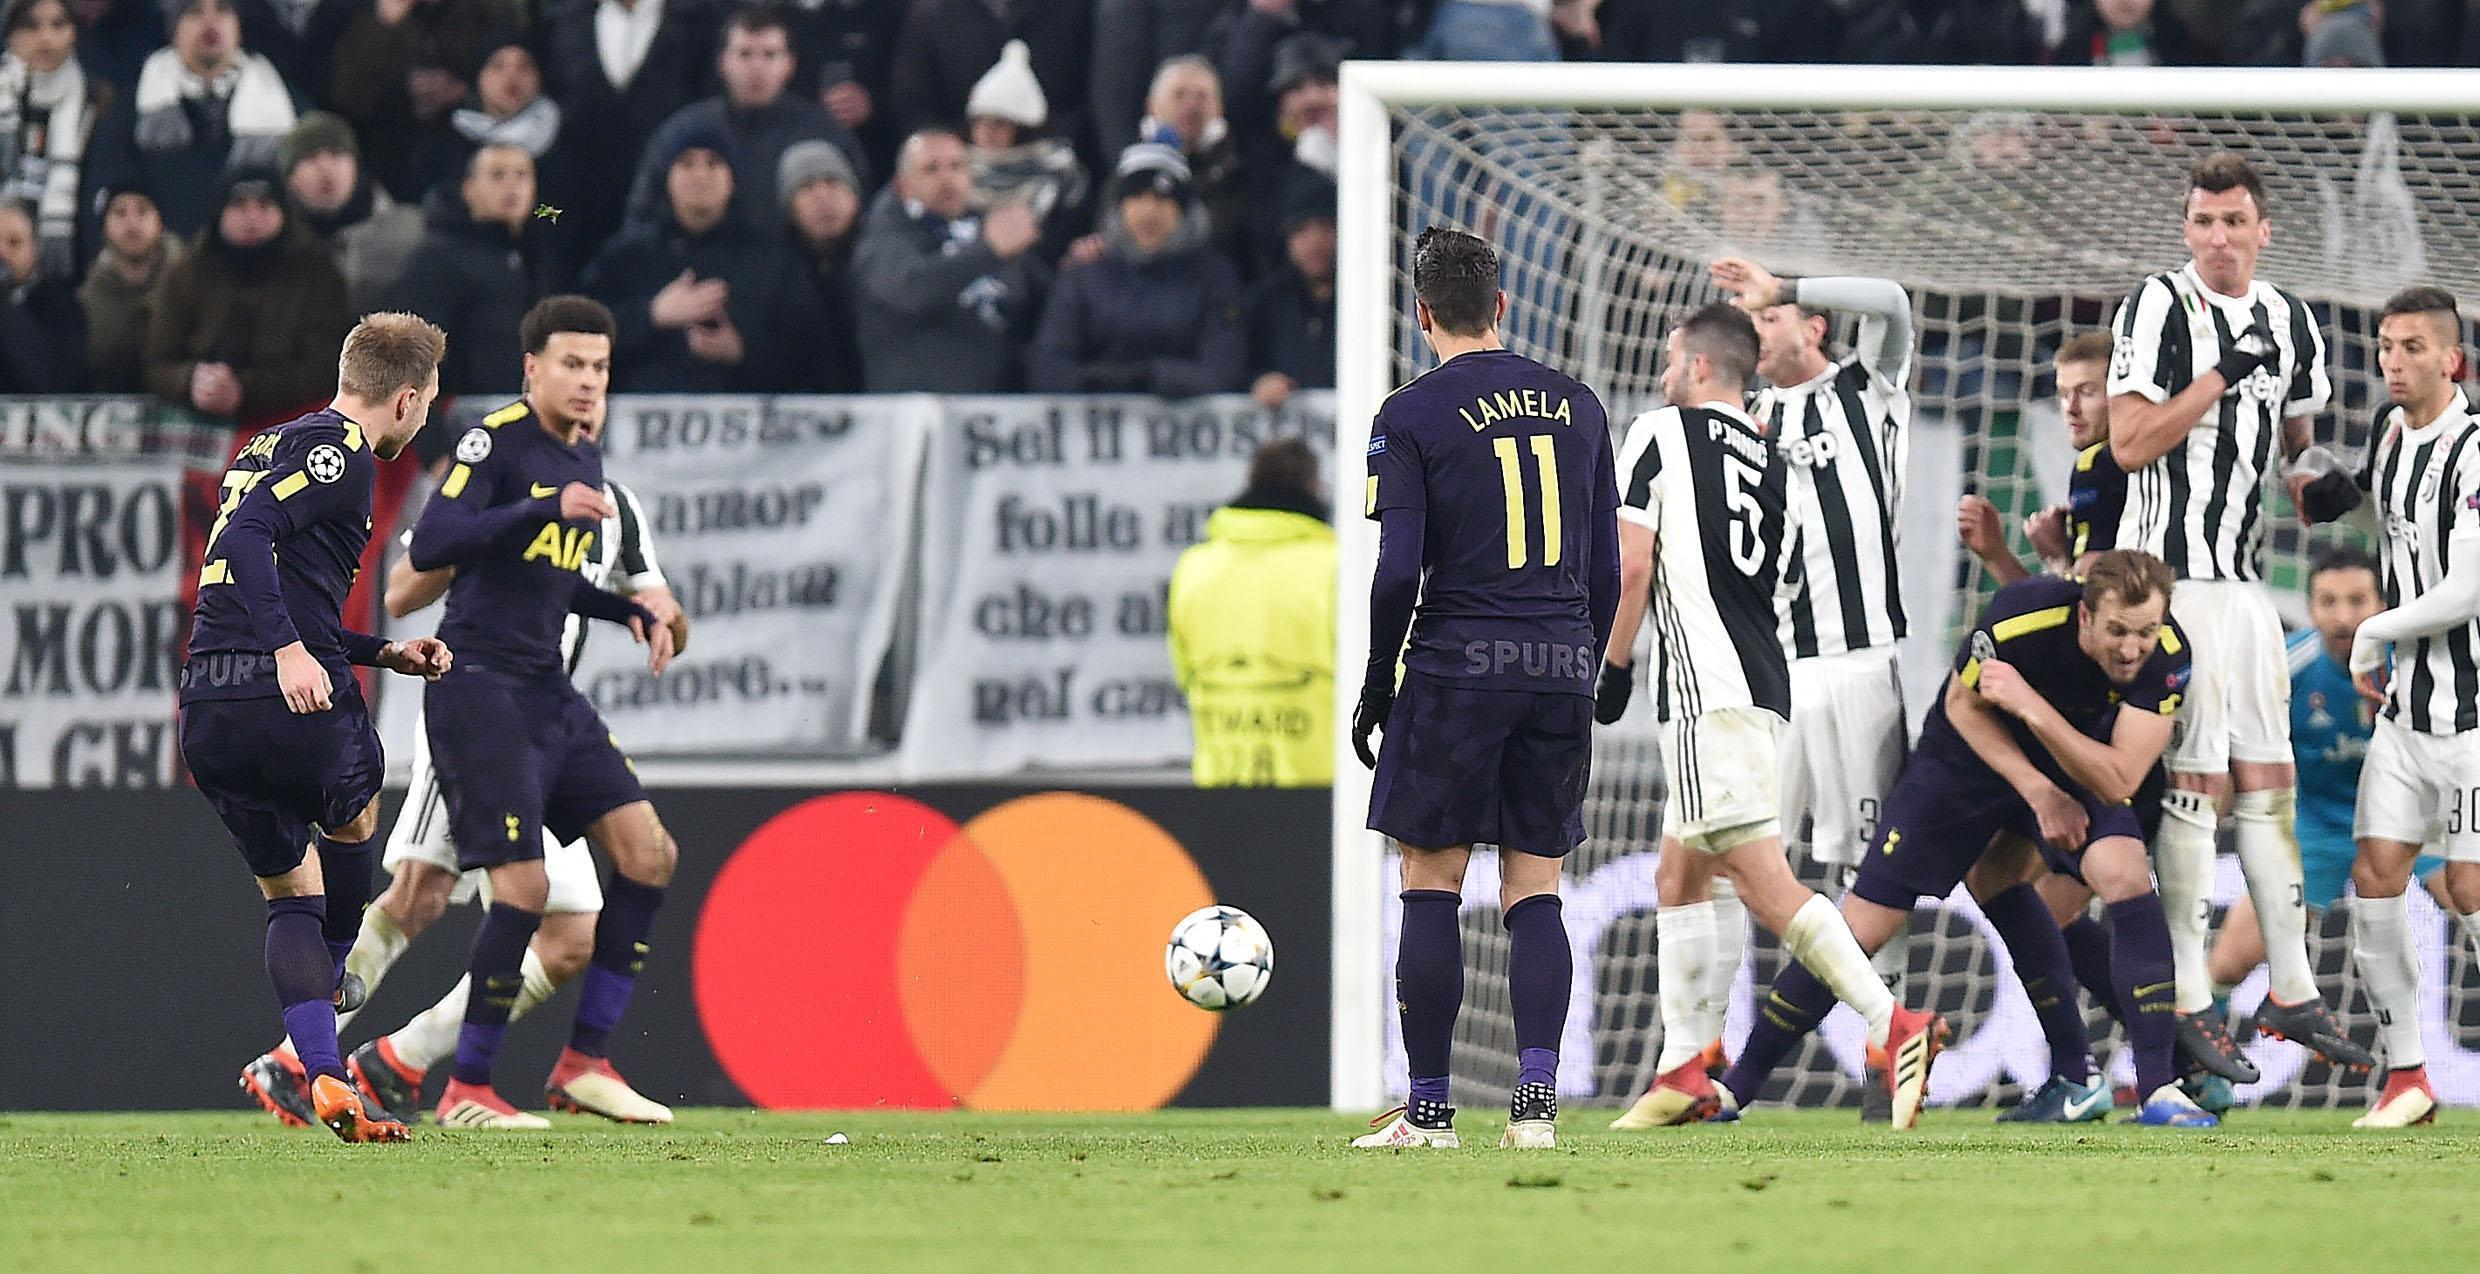 Kane leads Spurs' recovery to draw 2-2 at Juventus